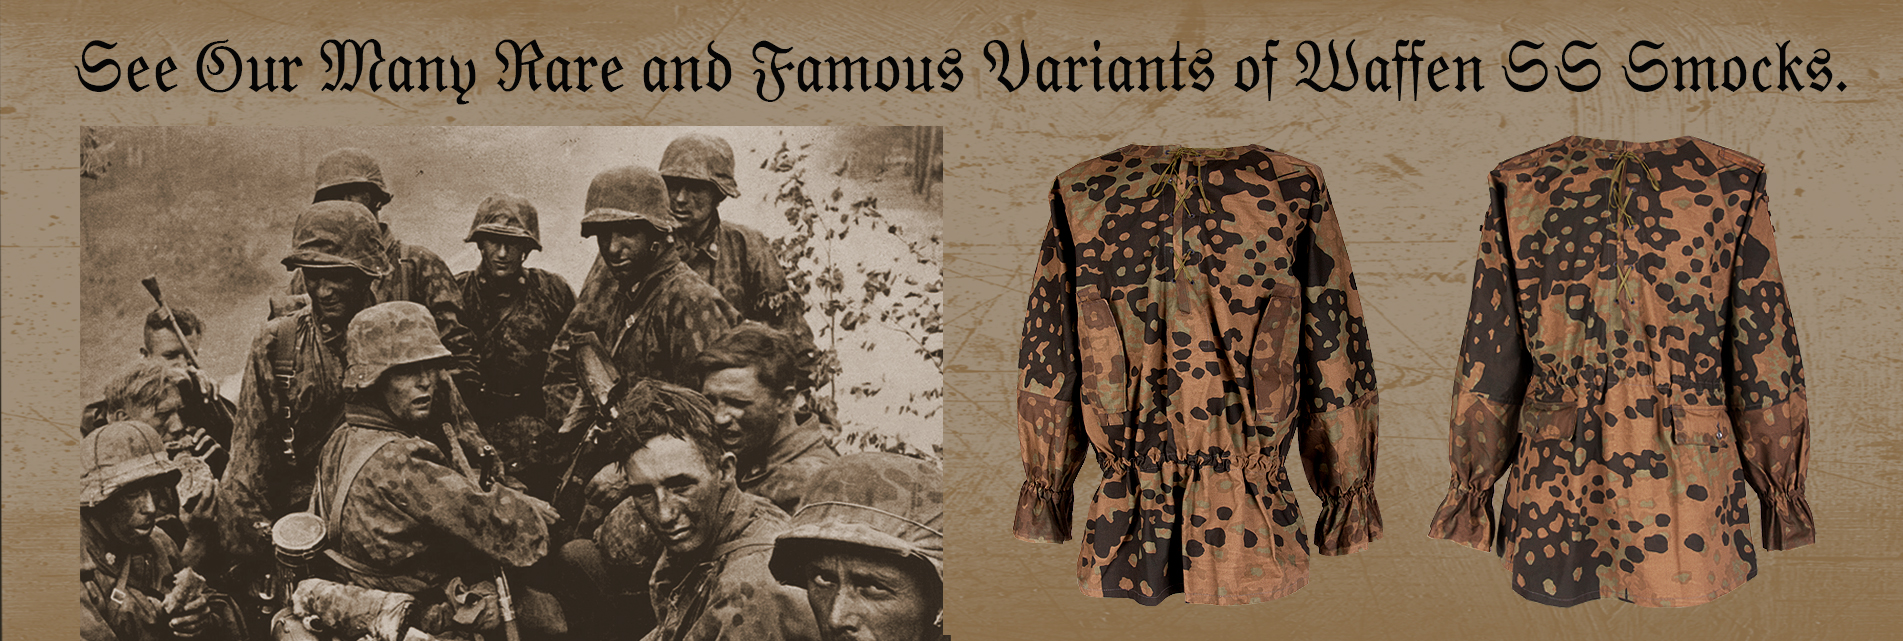 Rare and famous WWII SS Smocks